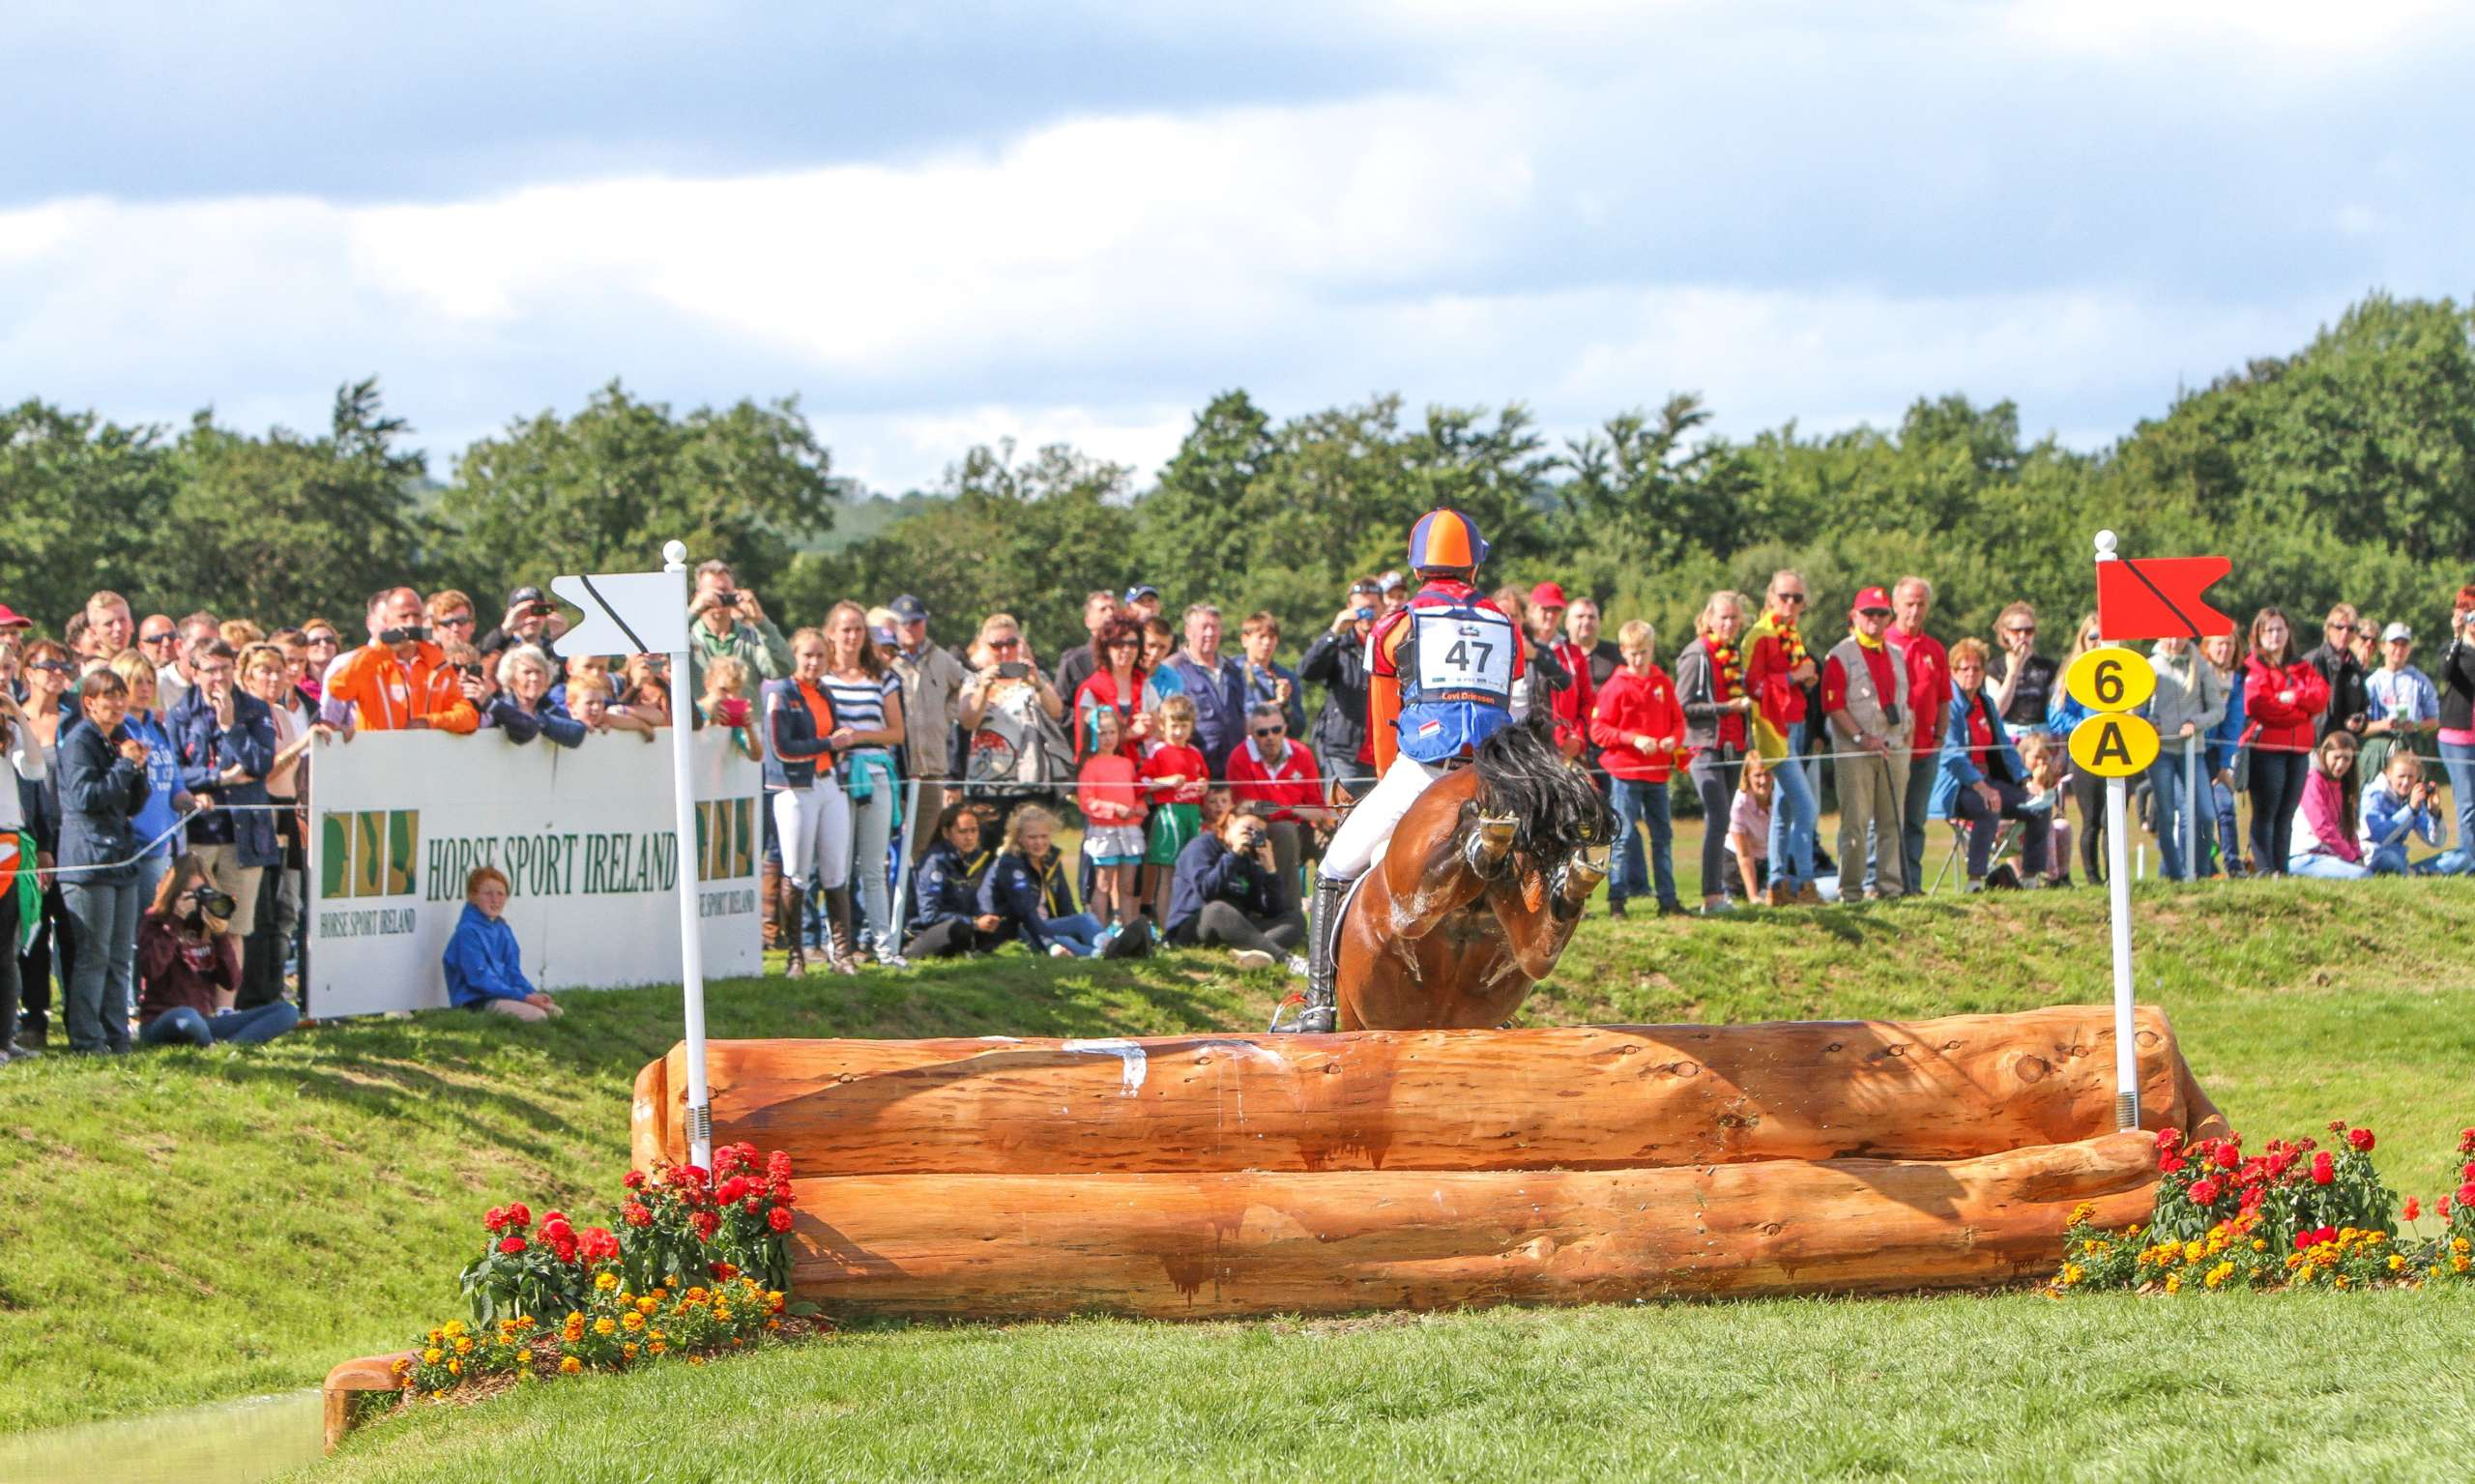 2022 Eventing World Championships bid proves unsuccessful